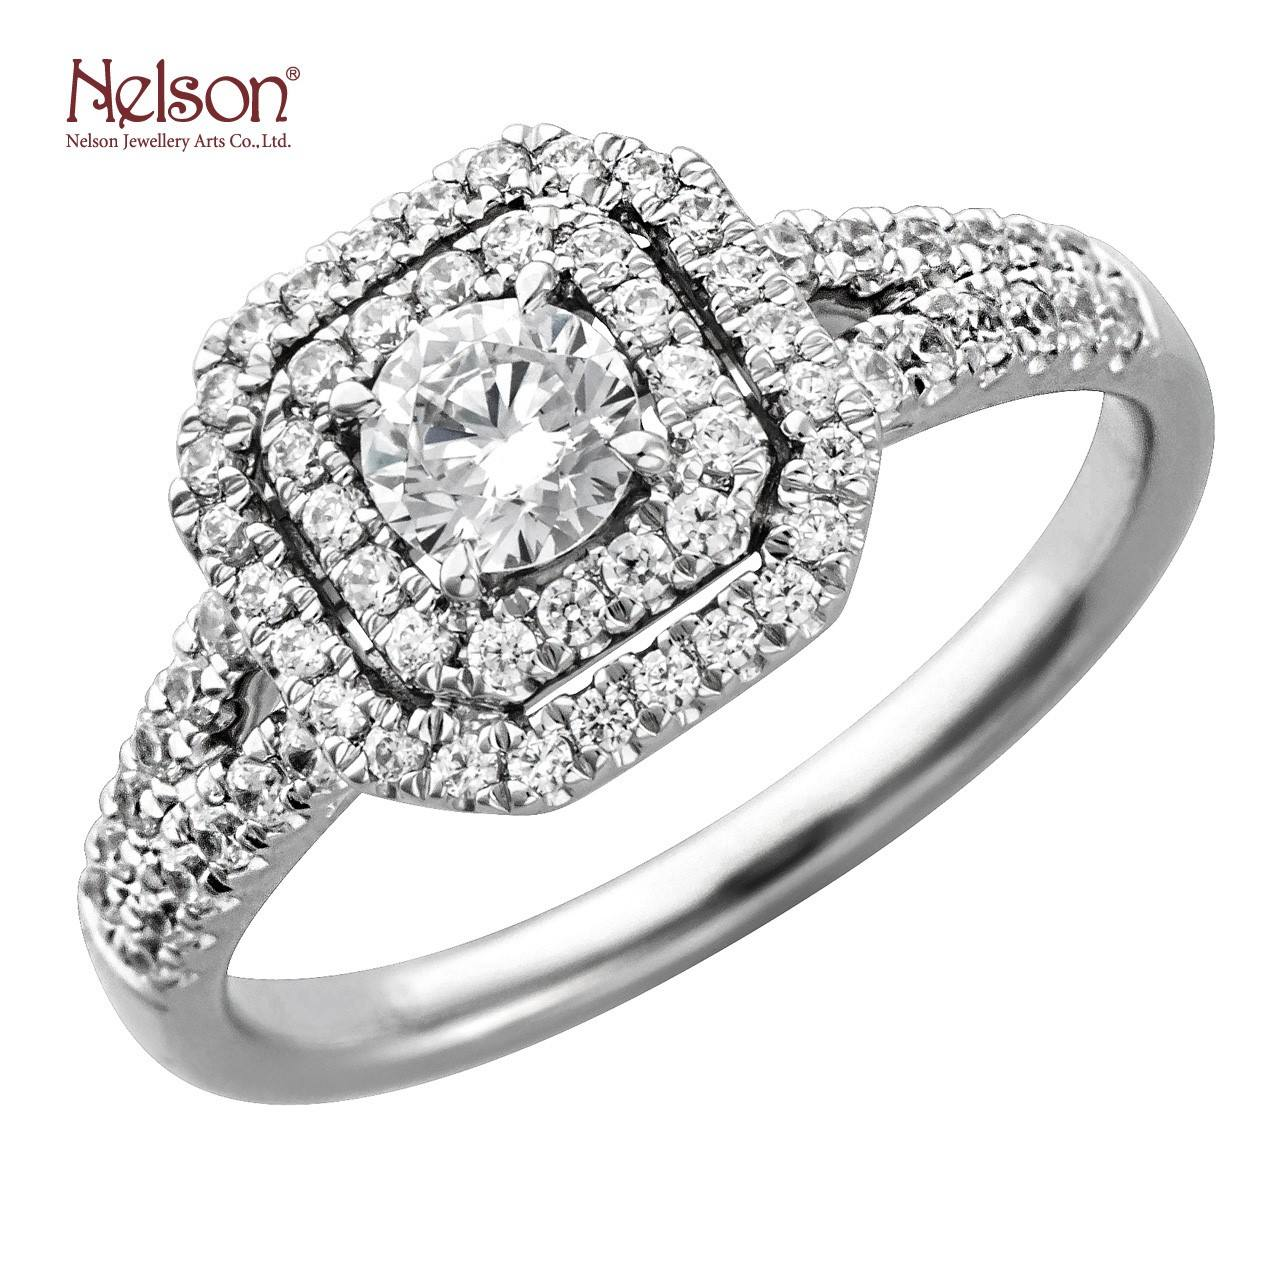 Nelson Jewellery 18K White Gold Anniversary Diamond Ring Micro Tiger Prong Set Wedding Jewellery Diamond Ring Mount